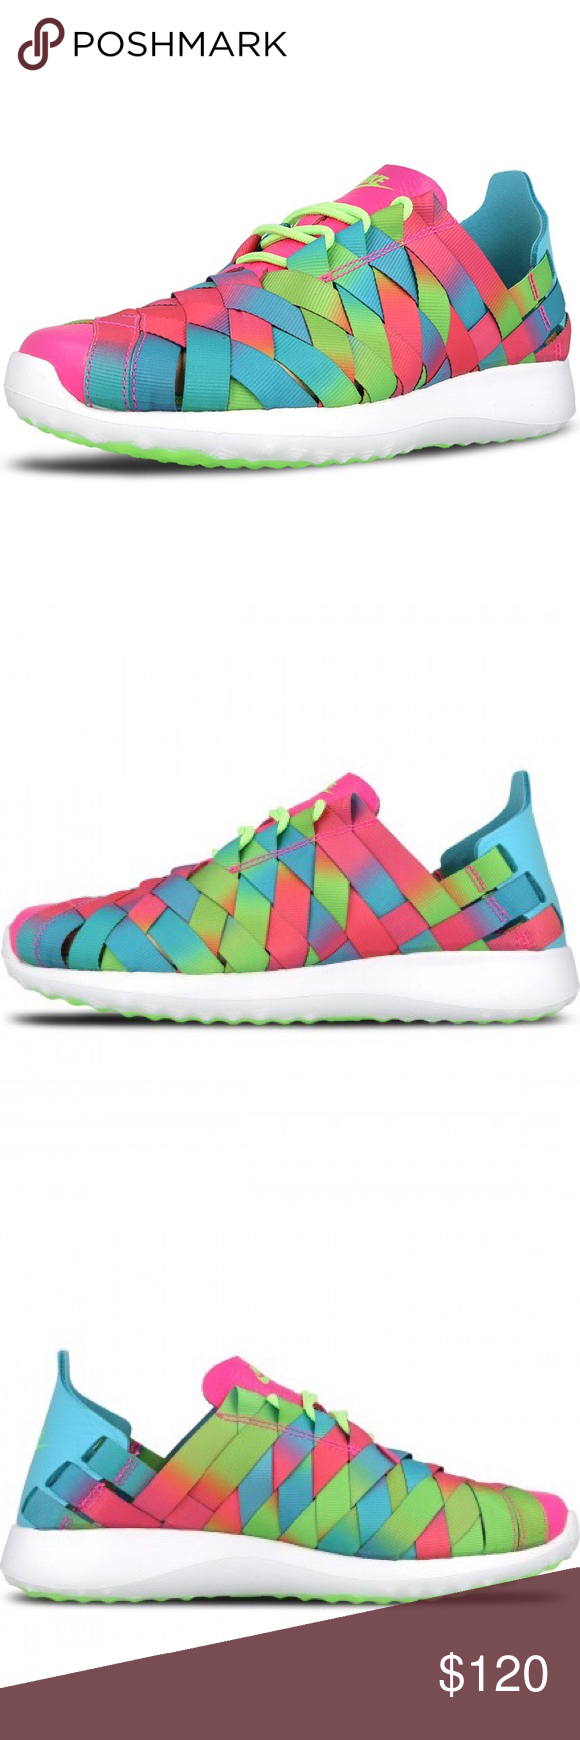 Nike Juvenate Woven Premium Multicolor Sz 9 or 9.5 Inspired by the Roshe  One b9db4c2c46